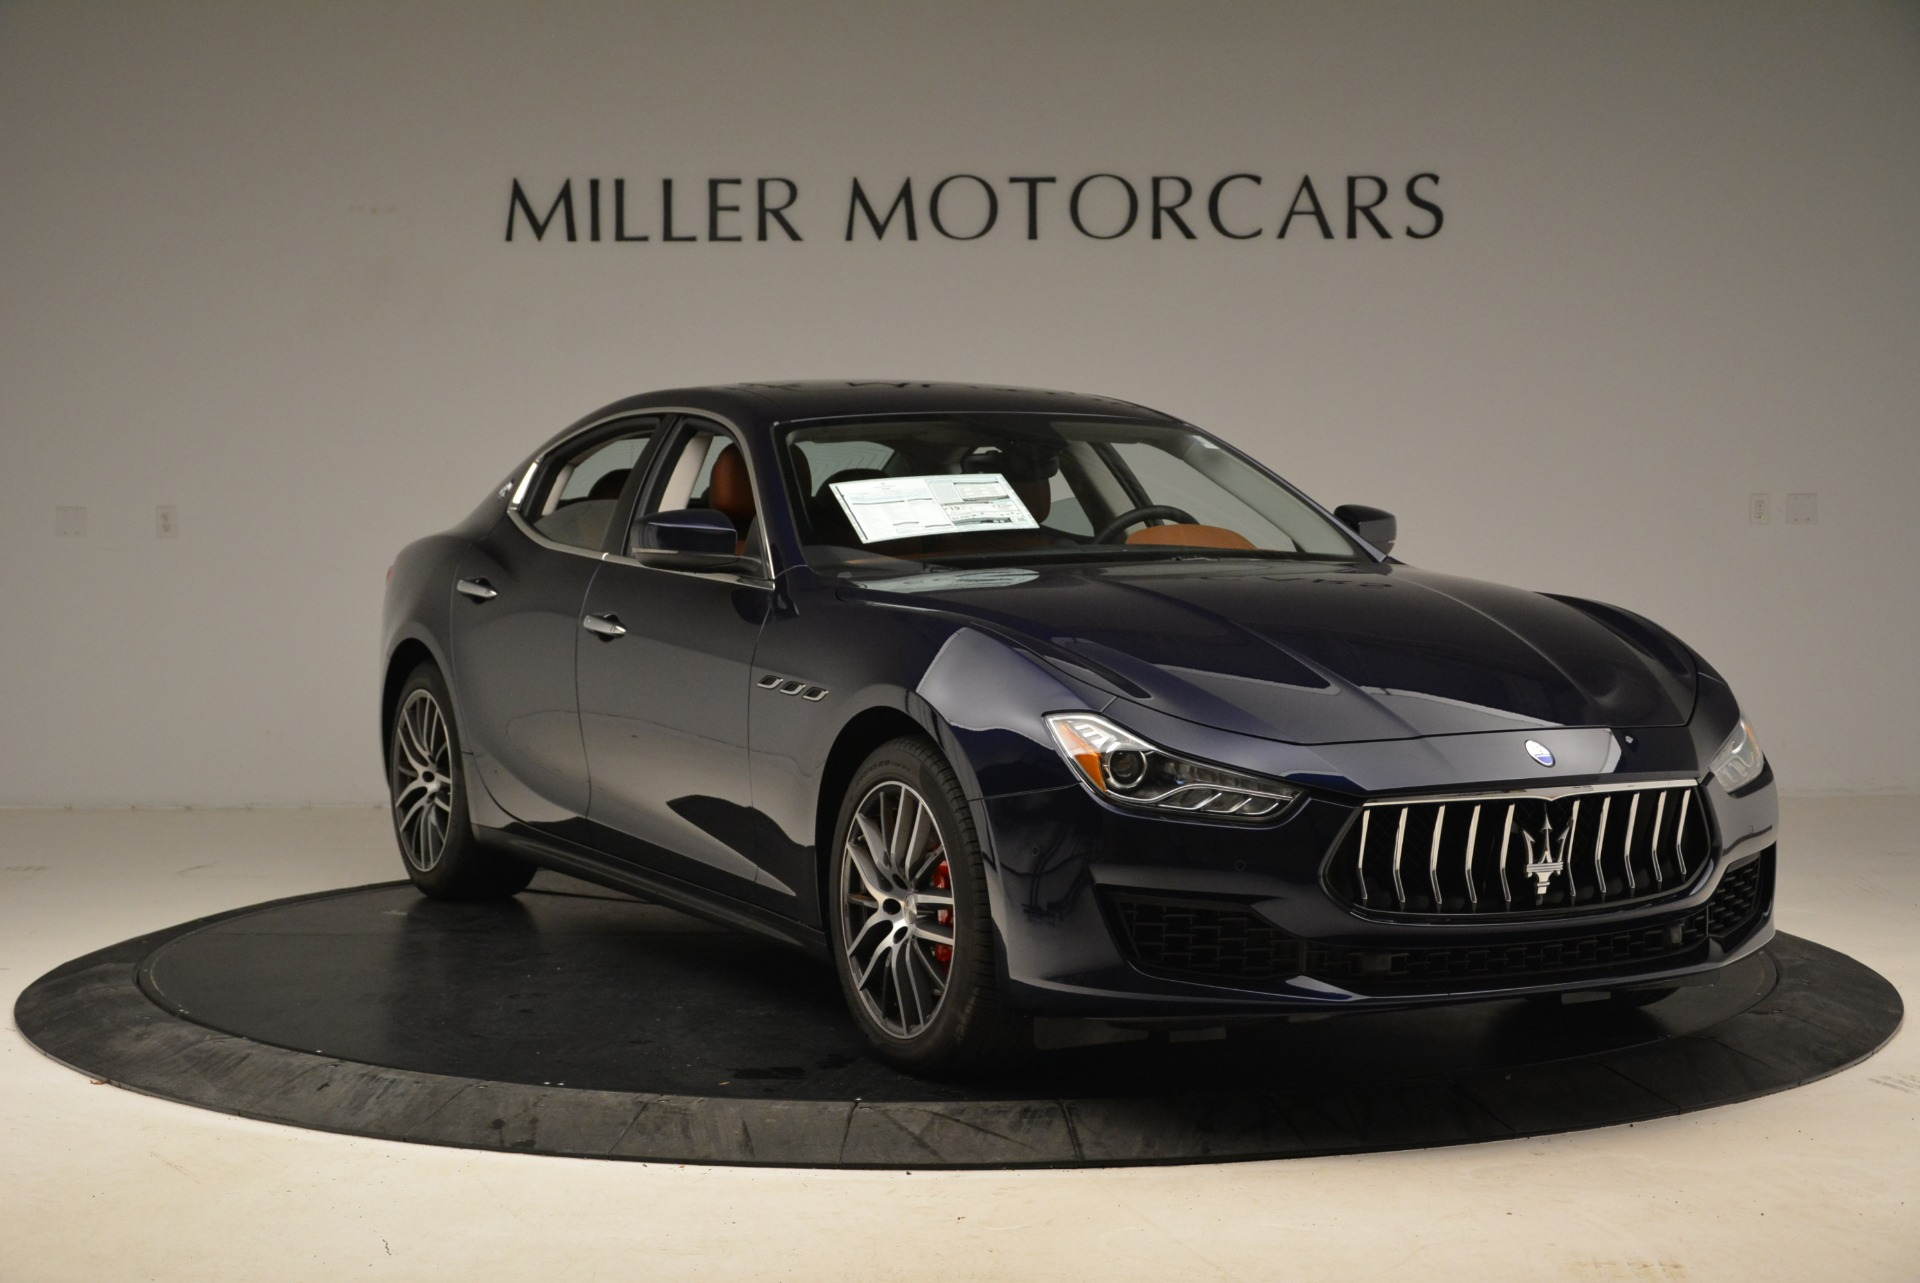 New 2019 Maserati Ghibli S Q4 For Sale In Westport, CT 3016_p11